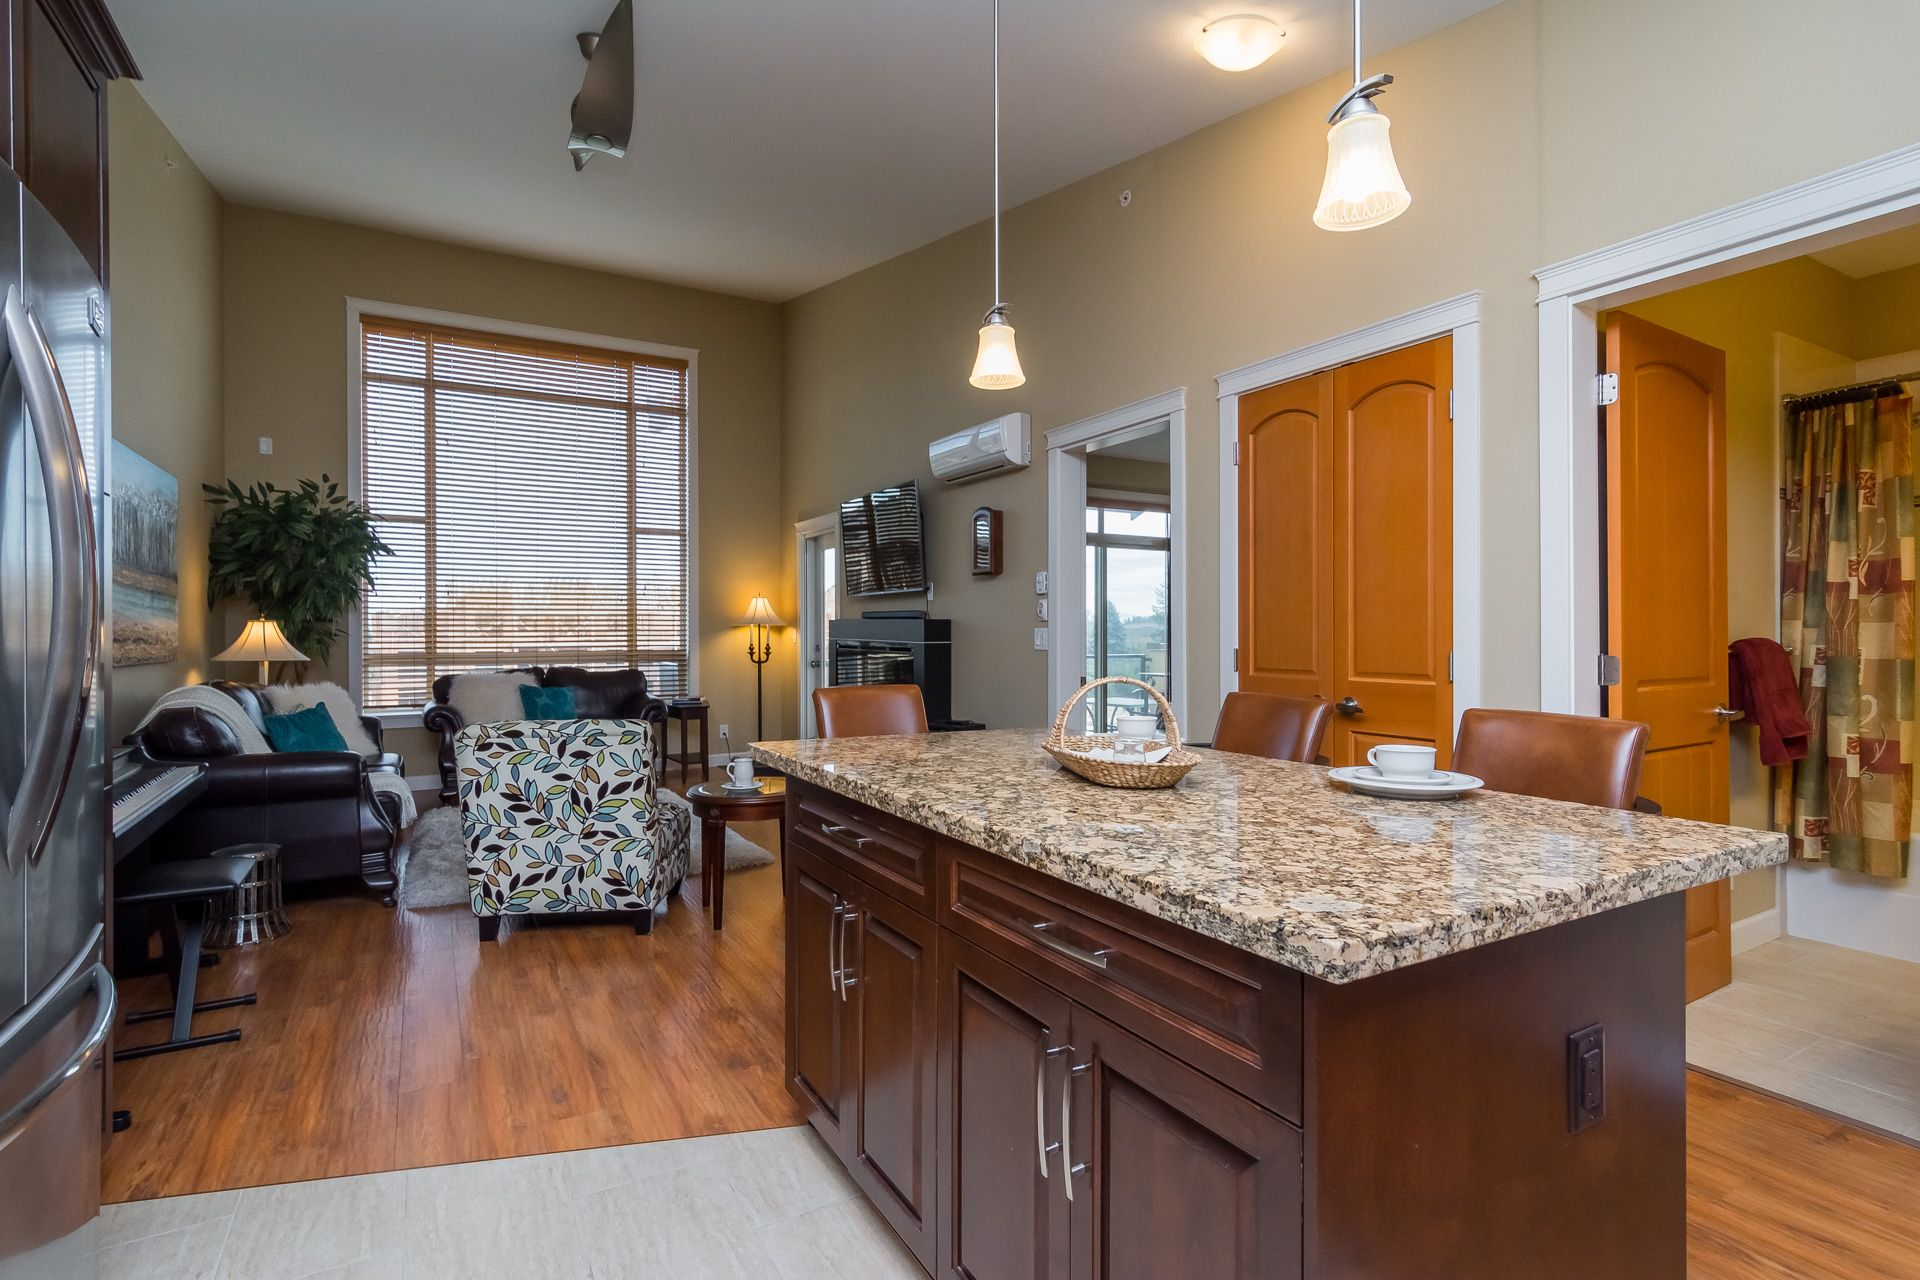 """Photo 19: Photos: 509 8258 207A Street in Langley: Willoughby Heights Condo for sale in """"YORKSON CREEK (BLG A)"""" : MLS®# R2221052"""